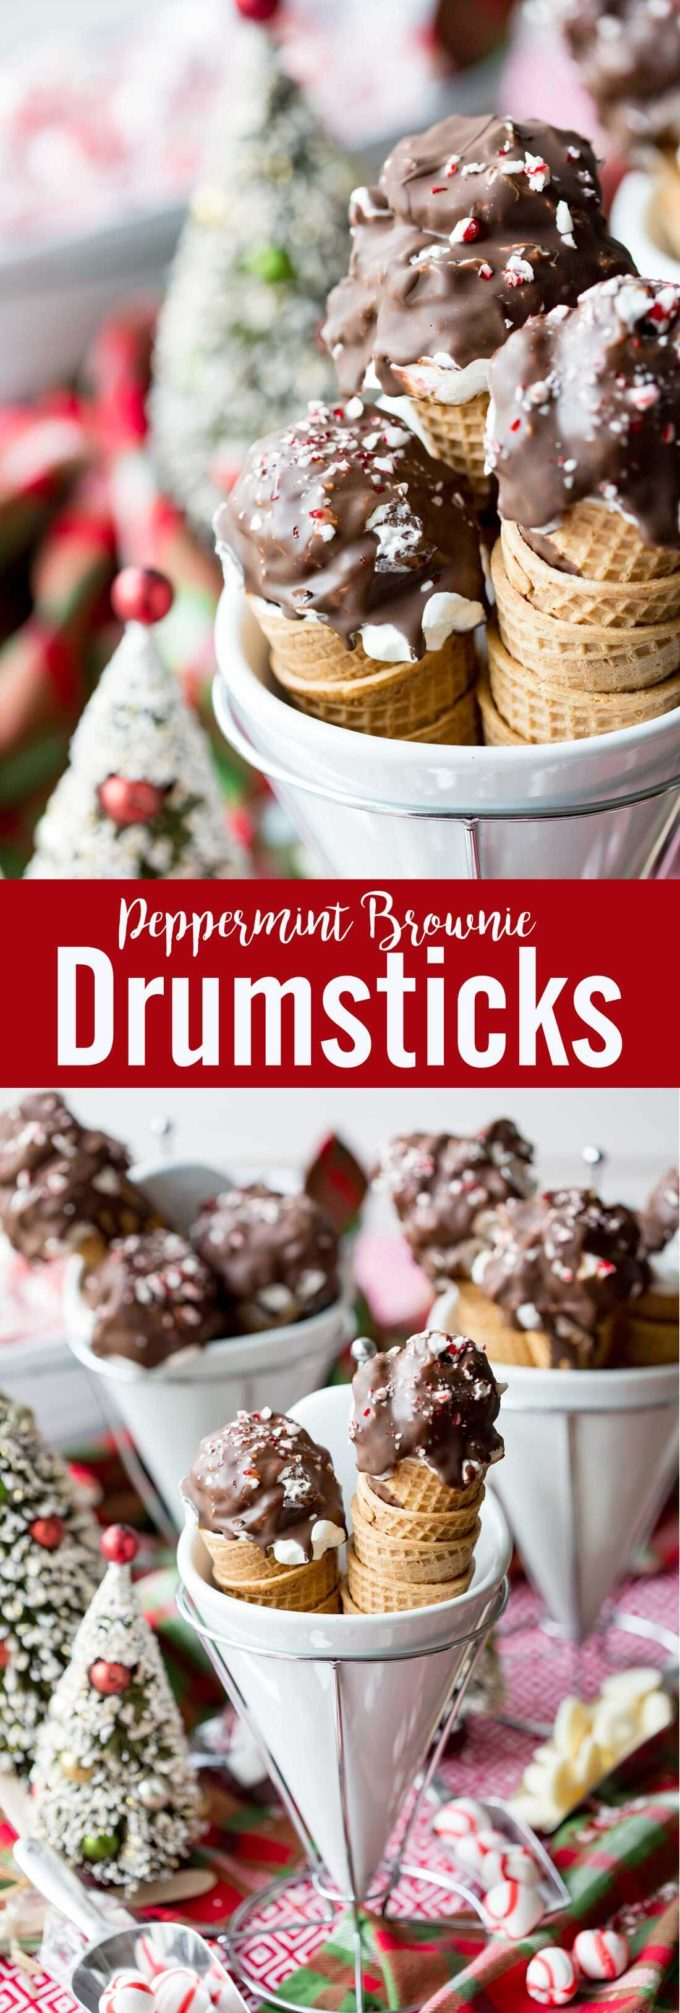 Peppermint Brownie Drumsticks are no churn peppermint ice cream.